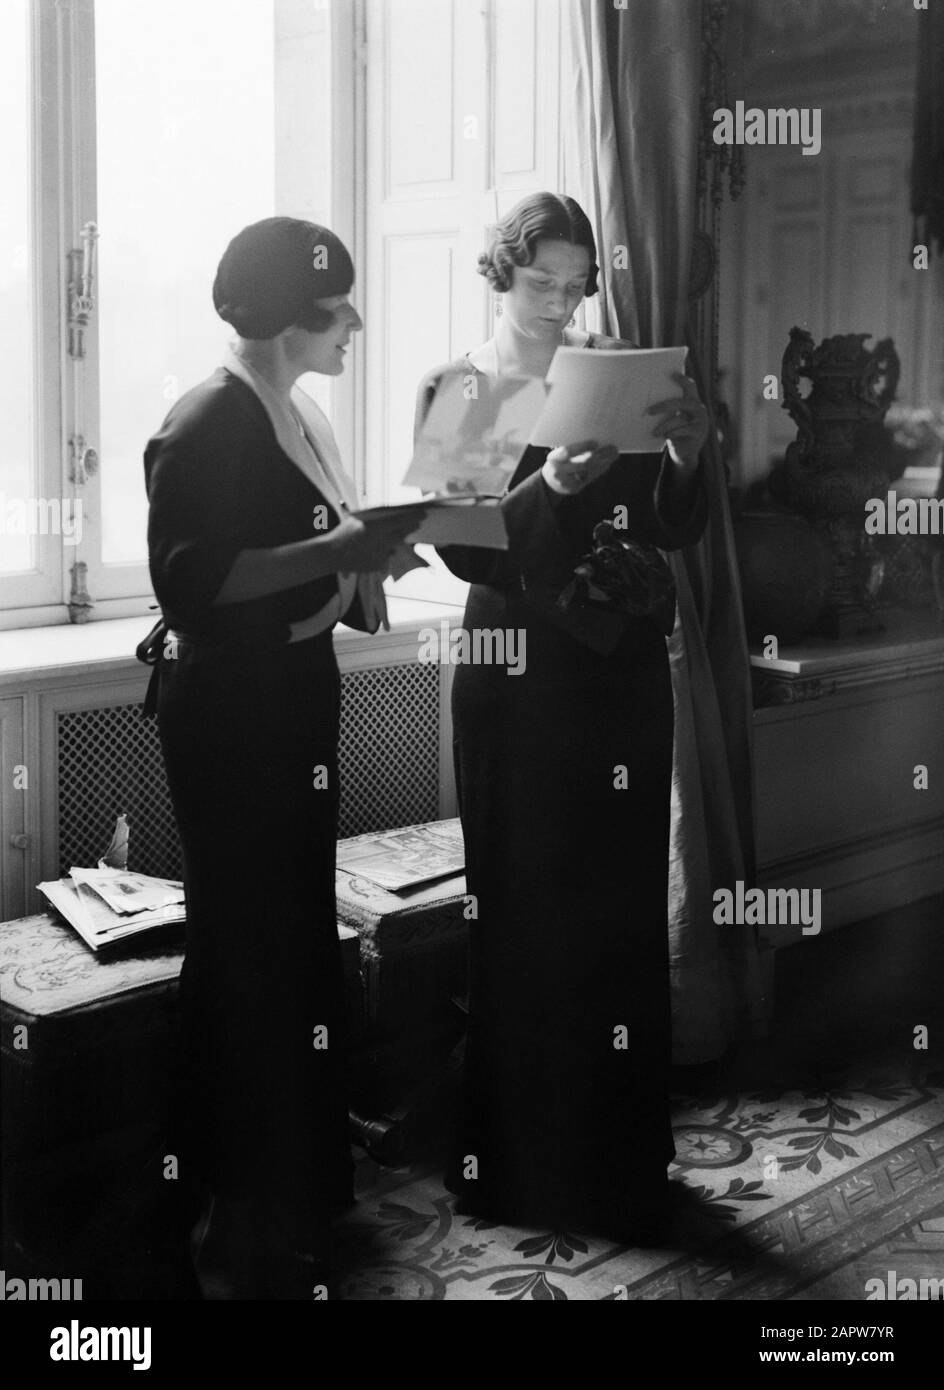 Royal Family Belgium  Queen Astrid of Belgium with an assistant Date: undated Location: Brussels Keywords: queens Personal name: Queen Astrid of Belgium Stock Photo